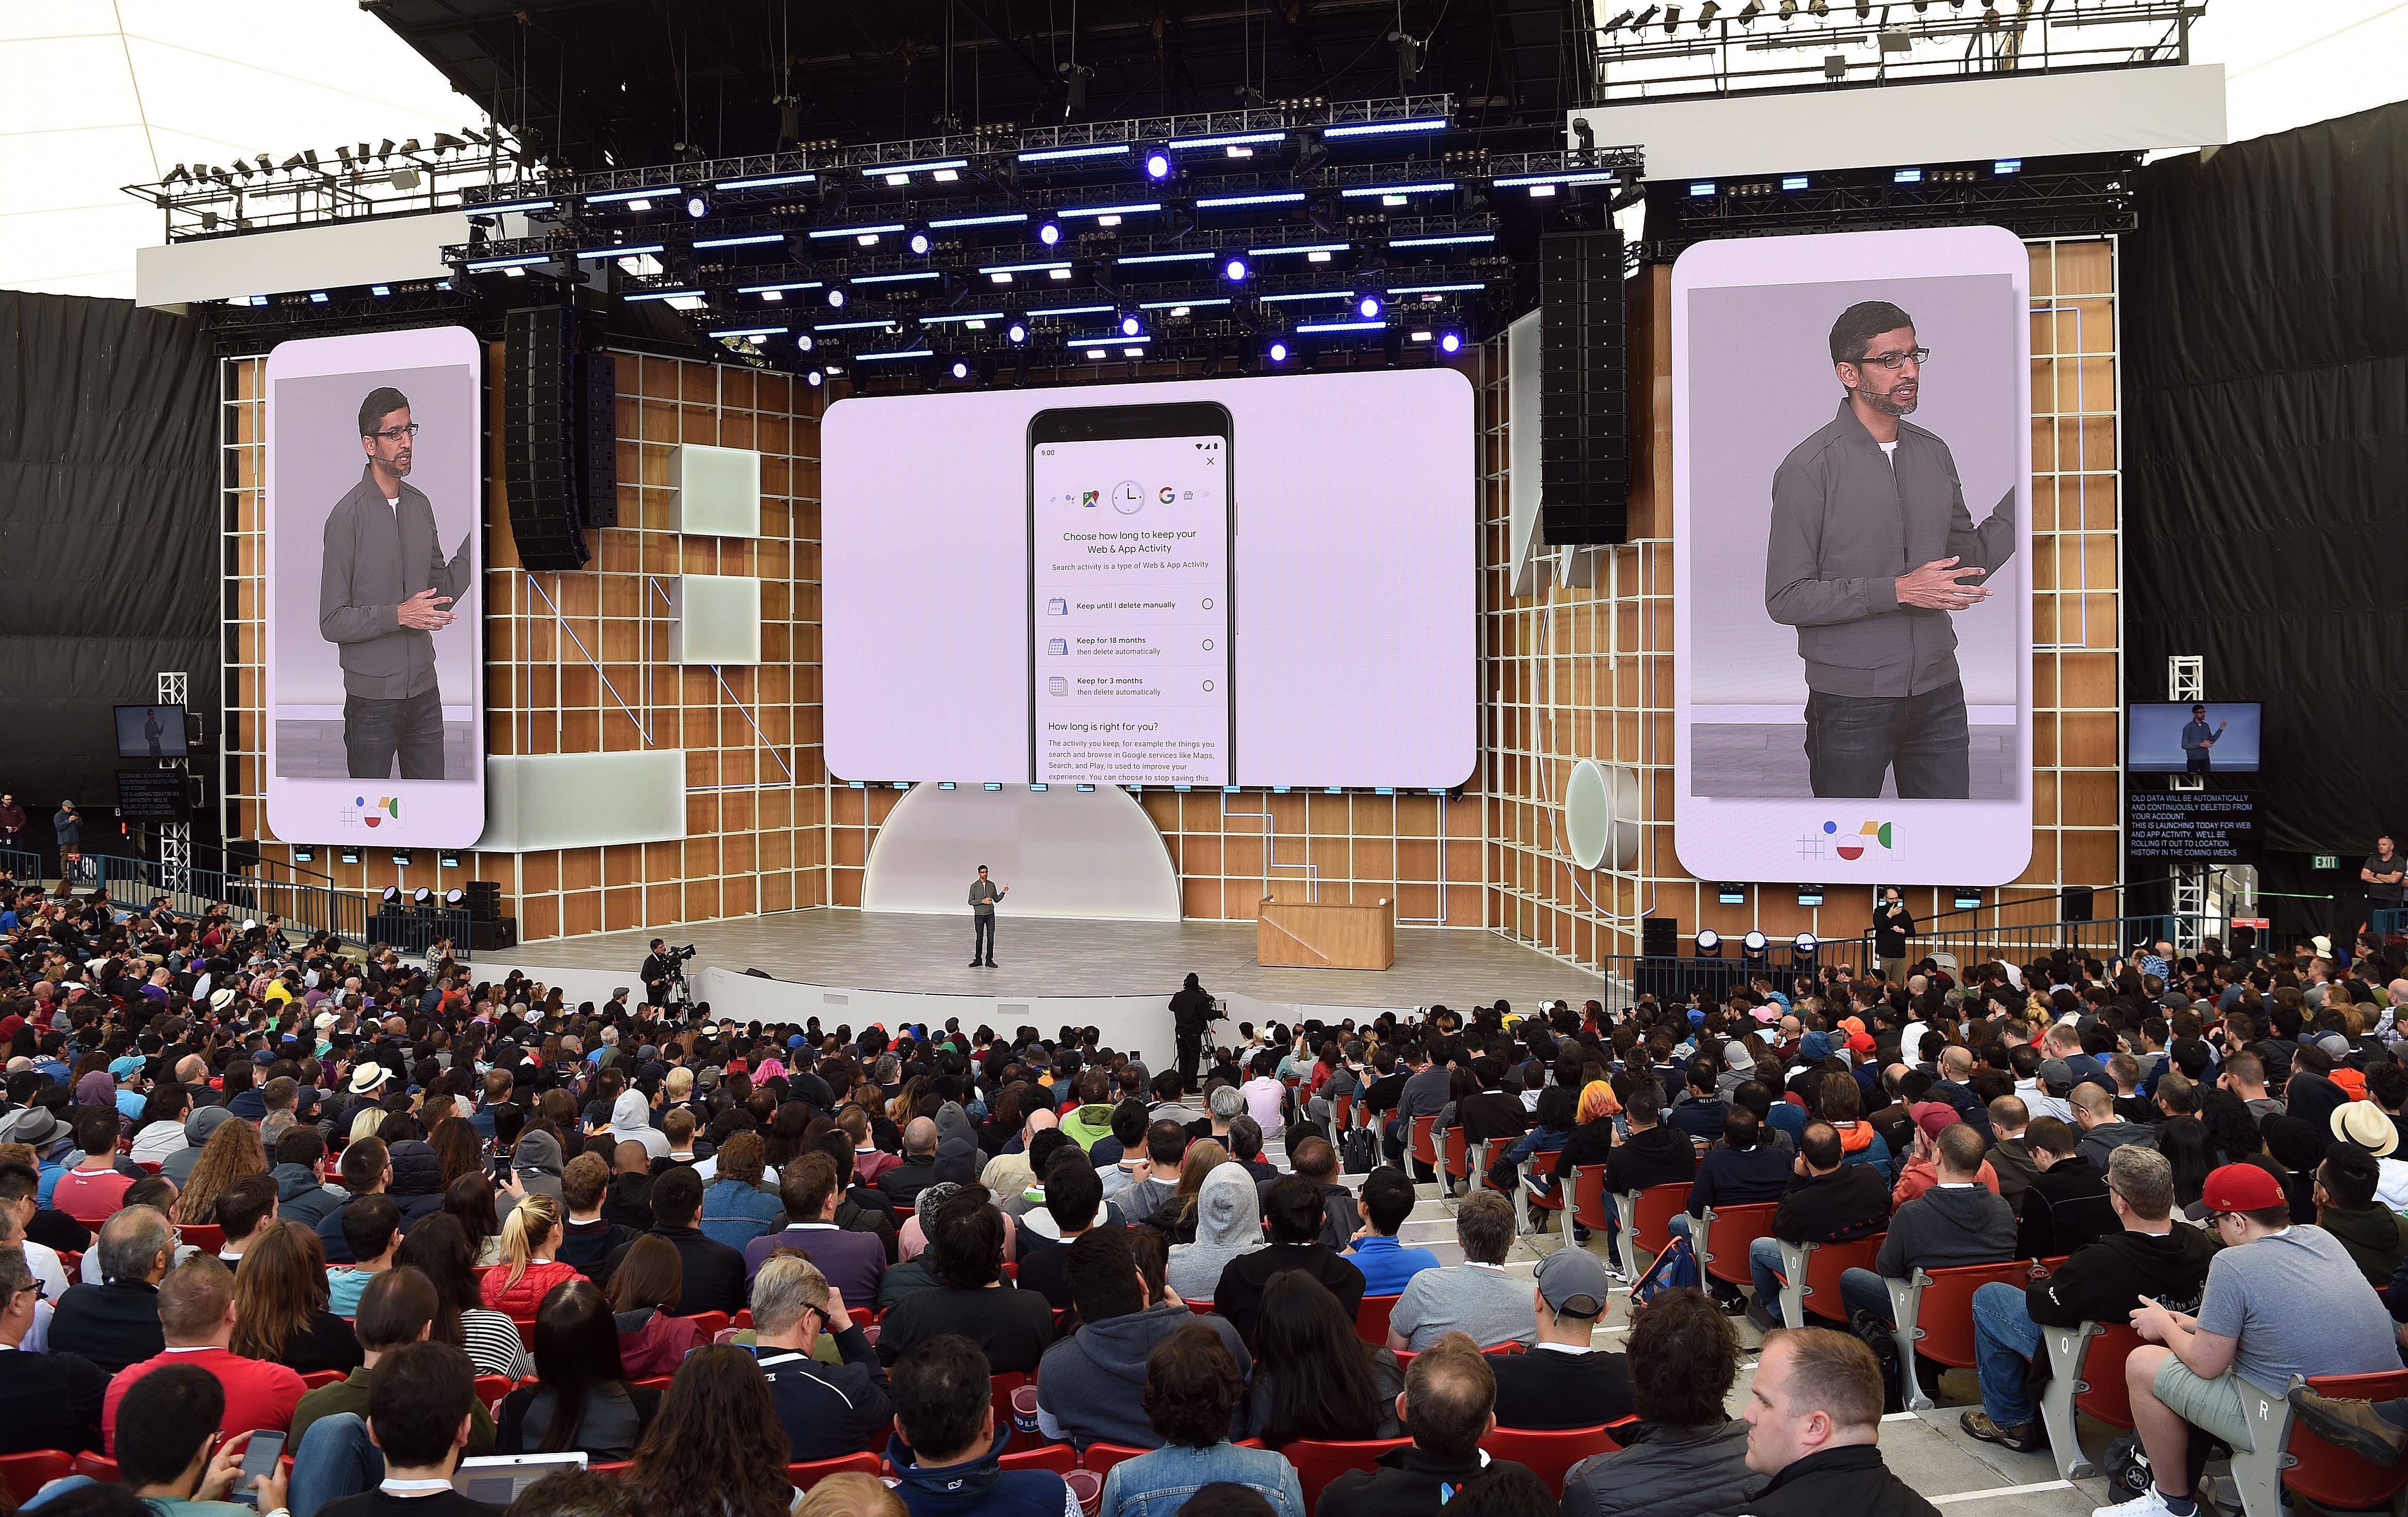 Google CEO Sundar Pichai speaks during the Google I/O 2019 keynote session at Shoreline Amphitheatre in Mountain View, California on May 7, 2019. (Photo by Josh Edelson / AFP)        (Photo credit should read JOSH EDELSON/AFP via Getty Images)